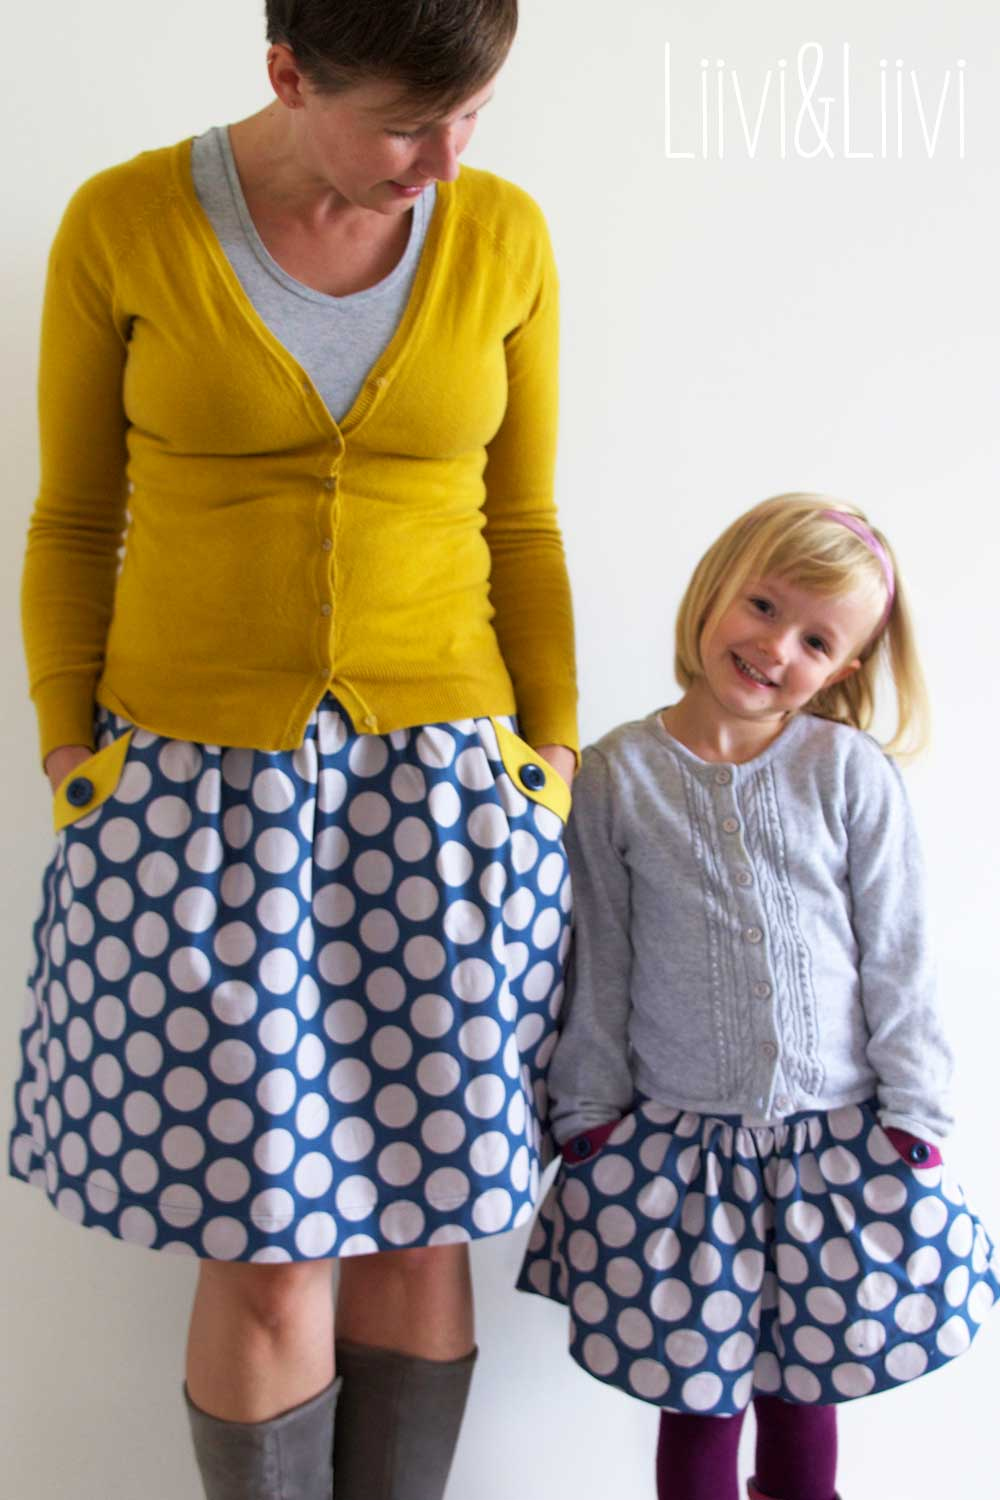 The Lotta skirt in French & German!